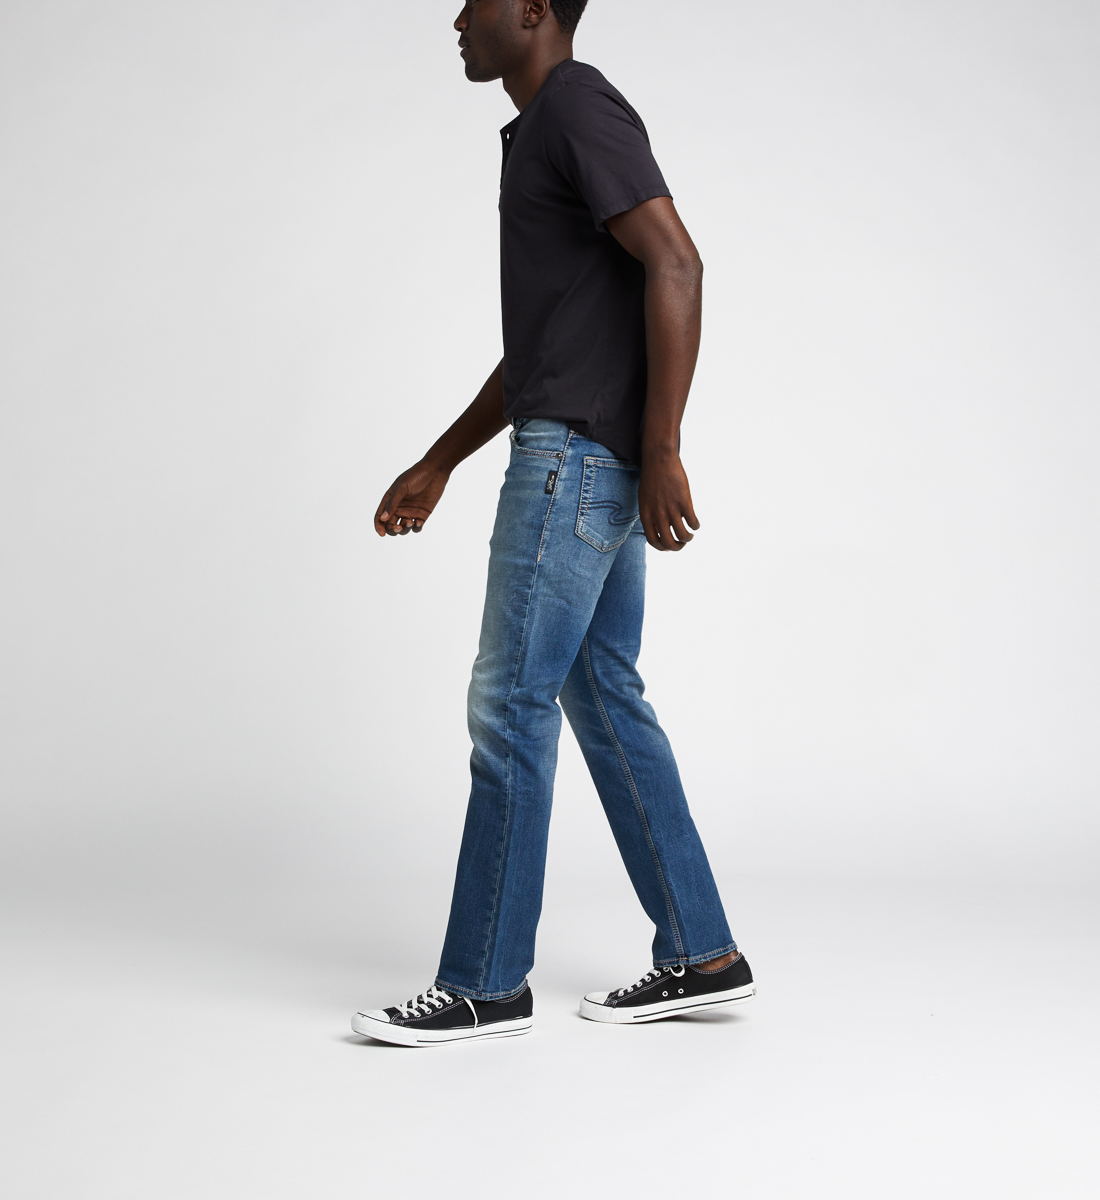 Allan Classic Fit Straight Jeans Side